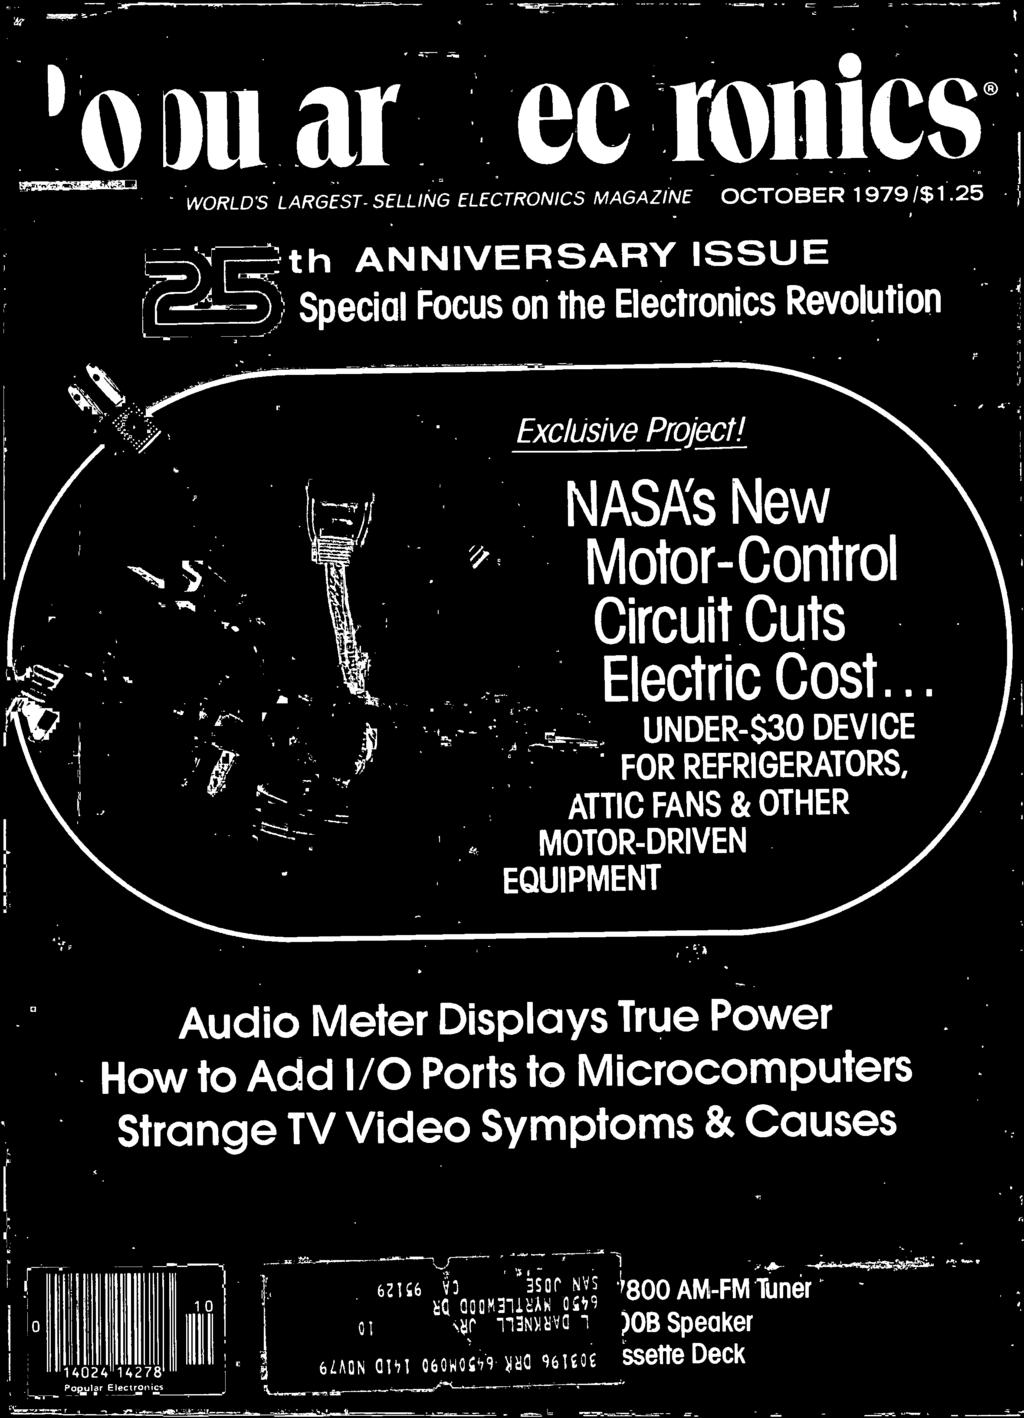 Ales Th Anniversary Issue Audio Meter Displays True Power Nasas New Jameco Kitpro Circuit Skills Easy Led Color Organ Kit Unassembled To Microcomputers Strange Tv Video Symptoms Causes 0 4024 4278 Popu A Electronics Iii 62